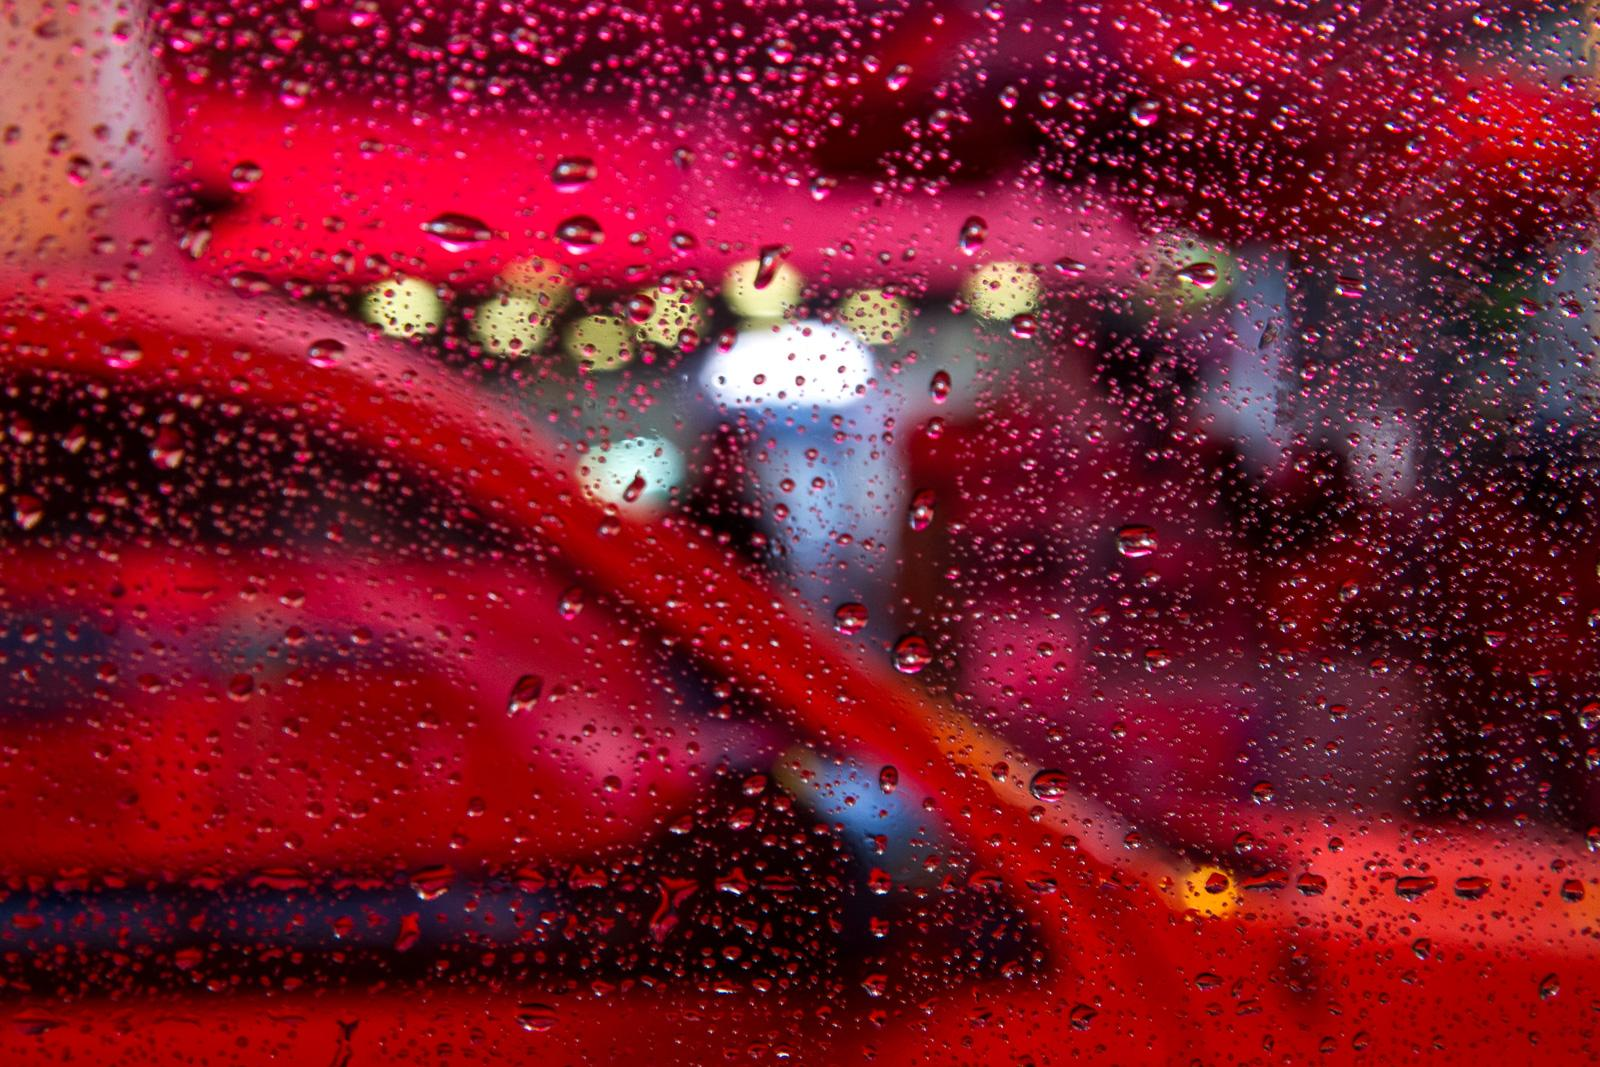 Pink Cab - Florescent Abstract Photograph of New York City